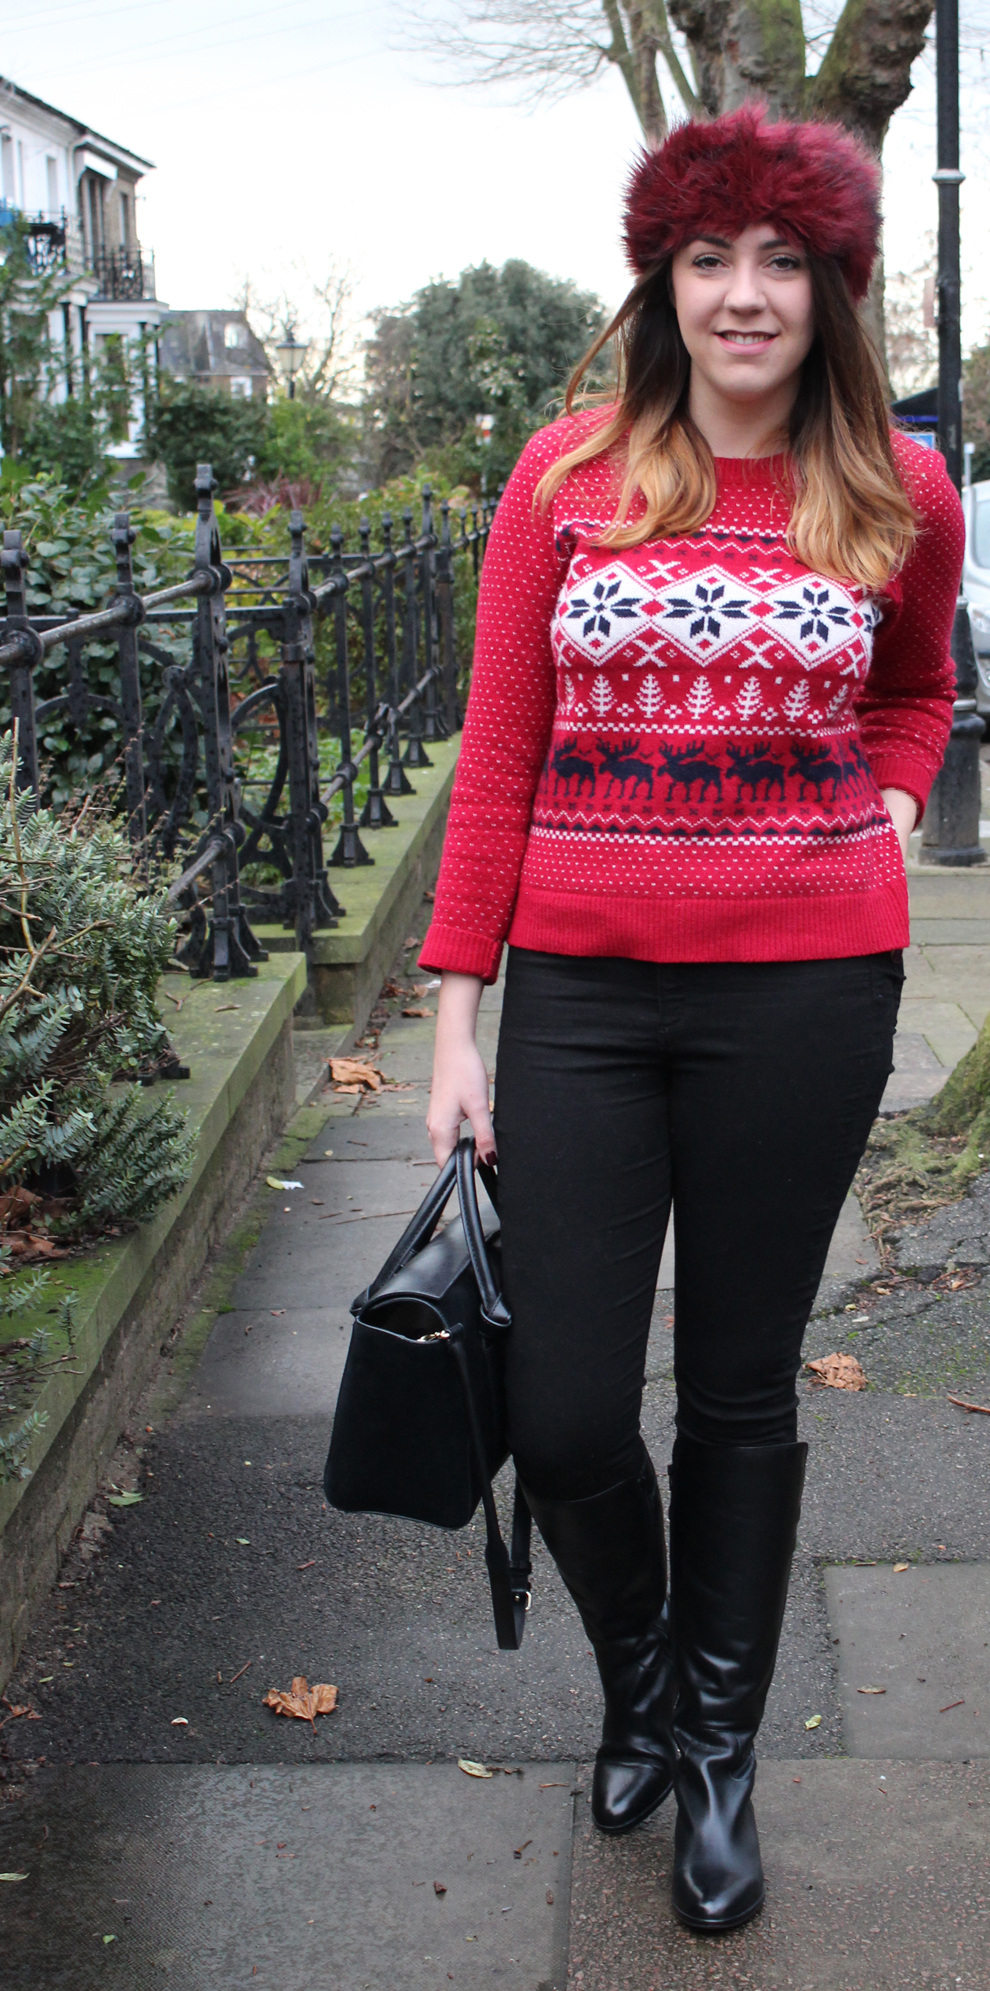 4 Bloggers 4 Christmas Jumpers The Laura Ashley Blog